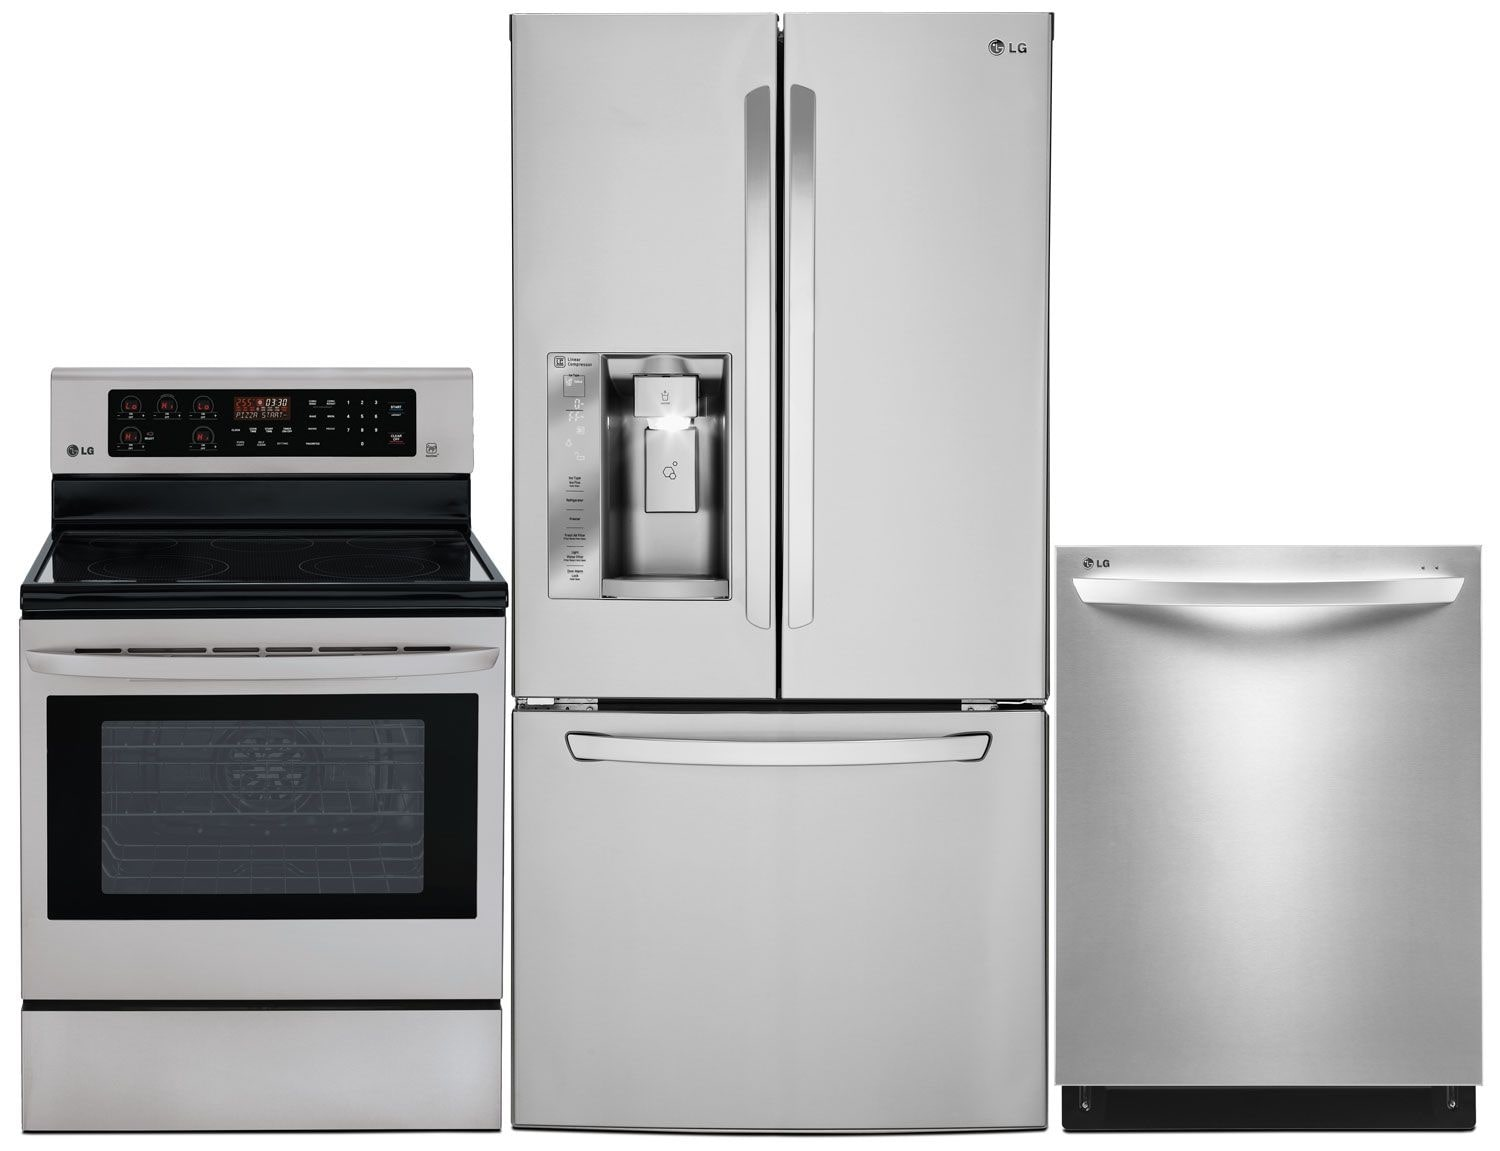 LG 24.2 Cu. Ft. Refrigerator, 6.3 Cu. Ft. Electric Range and Built-In Dishwasher